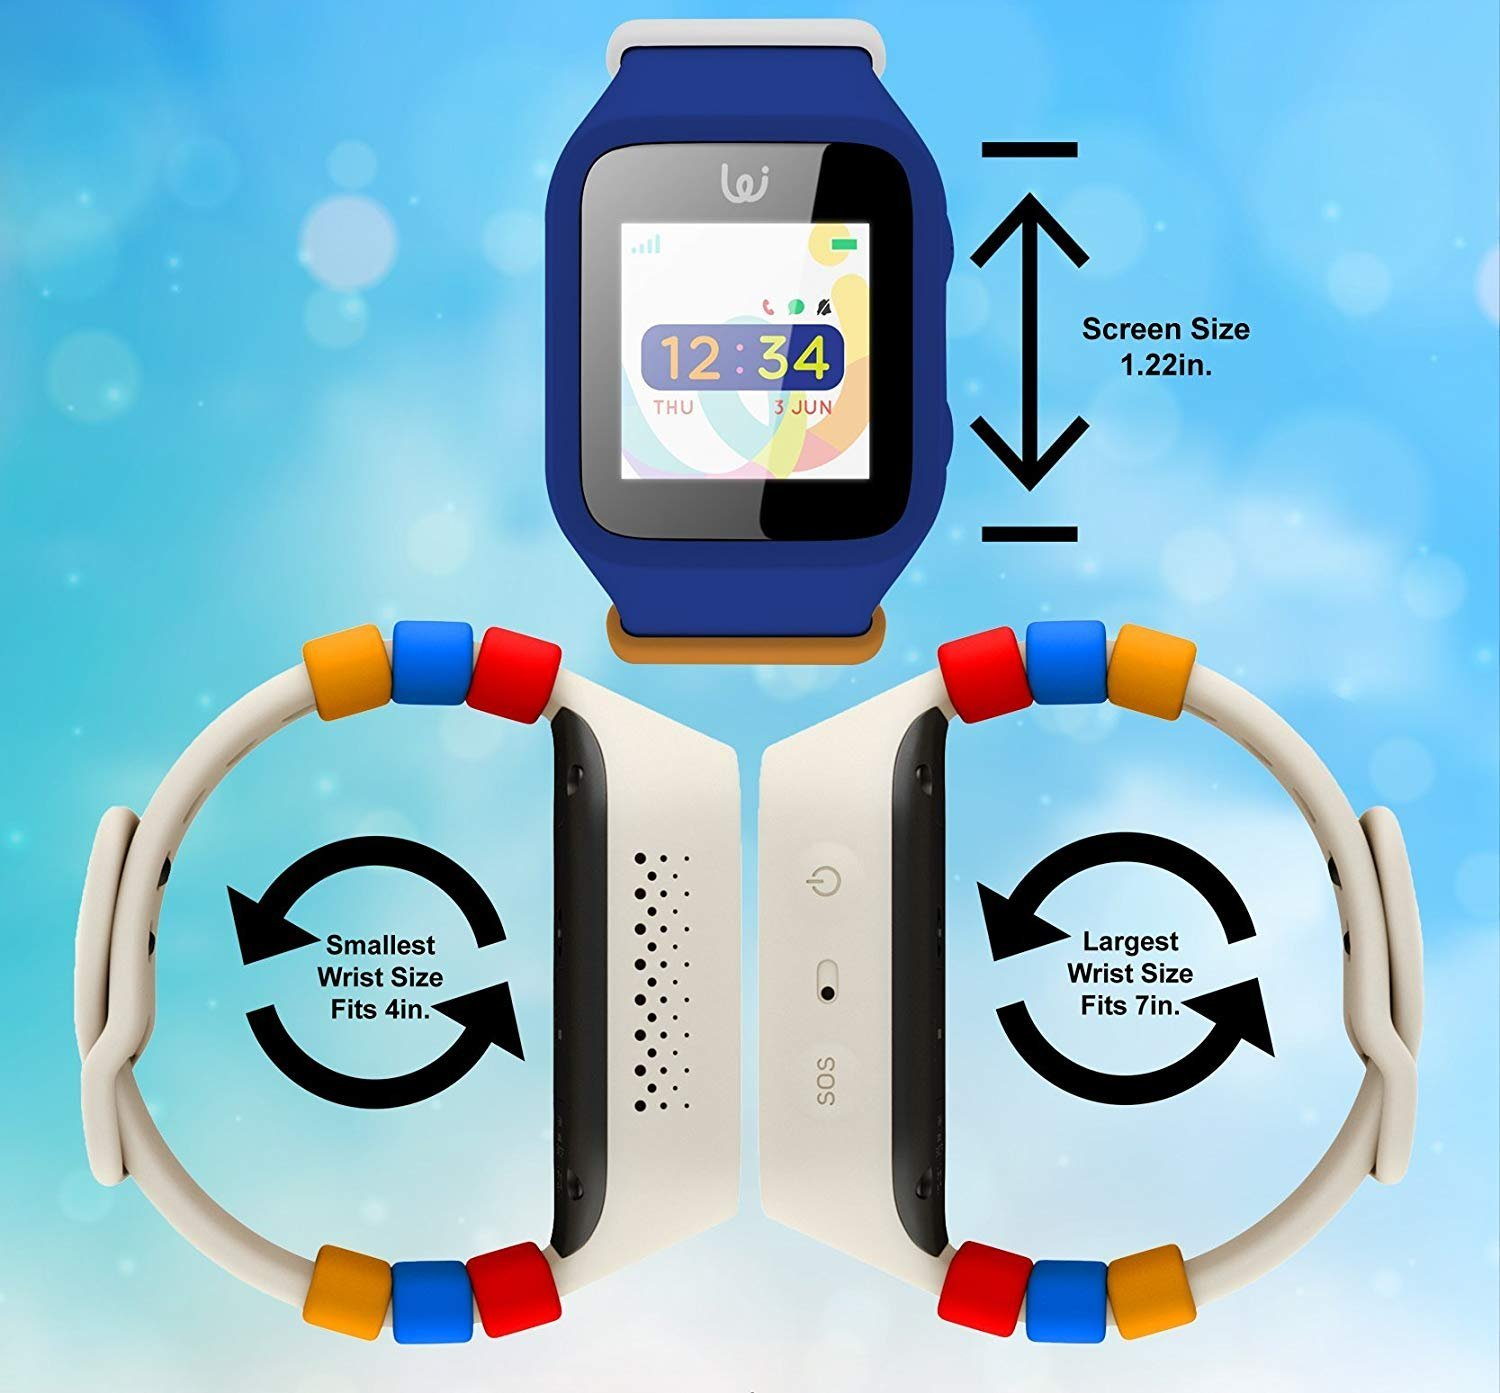 iGPS Wizard Smart Watch for Kids with SIM Card - Live GPS Tracking -  Cellular Voice & Text - Adjustable - Water Resistant - SOS, Danger Zone &  Device